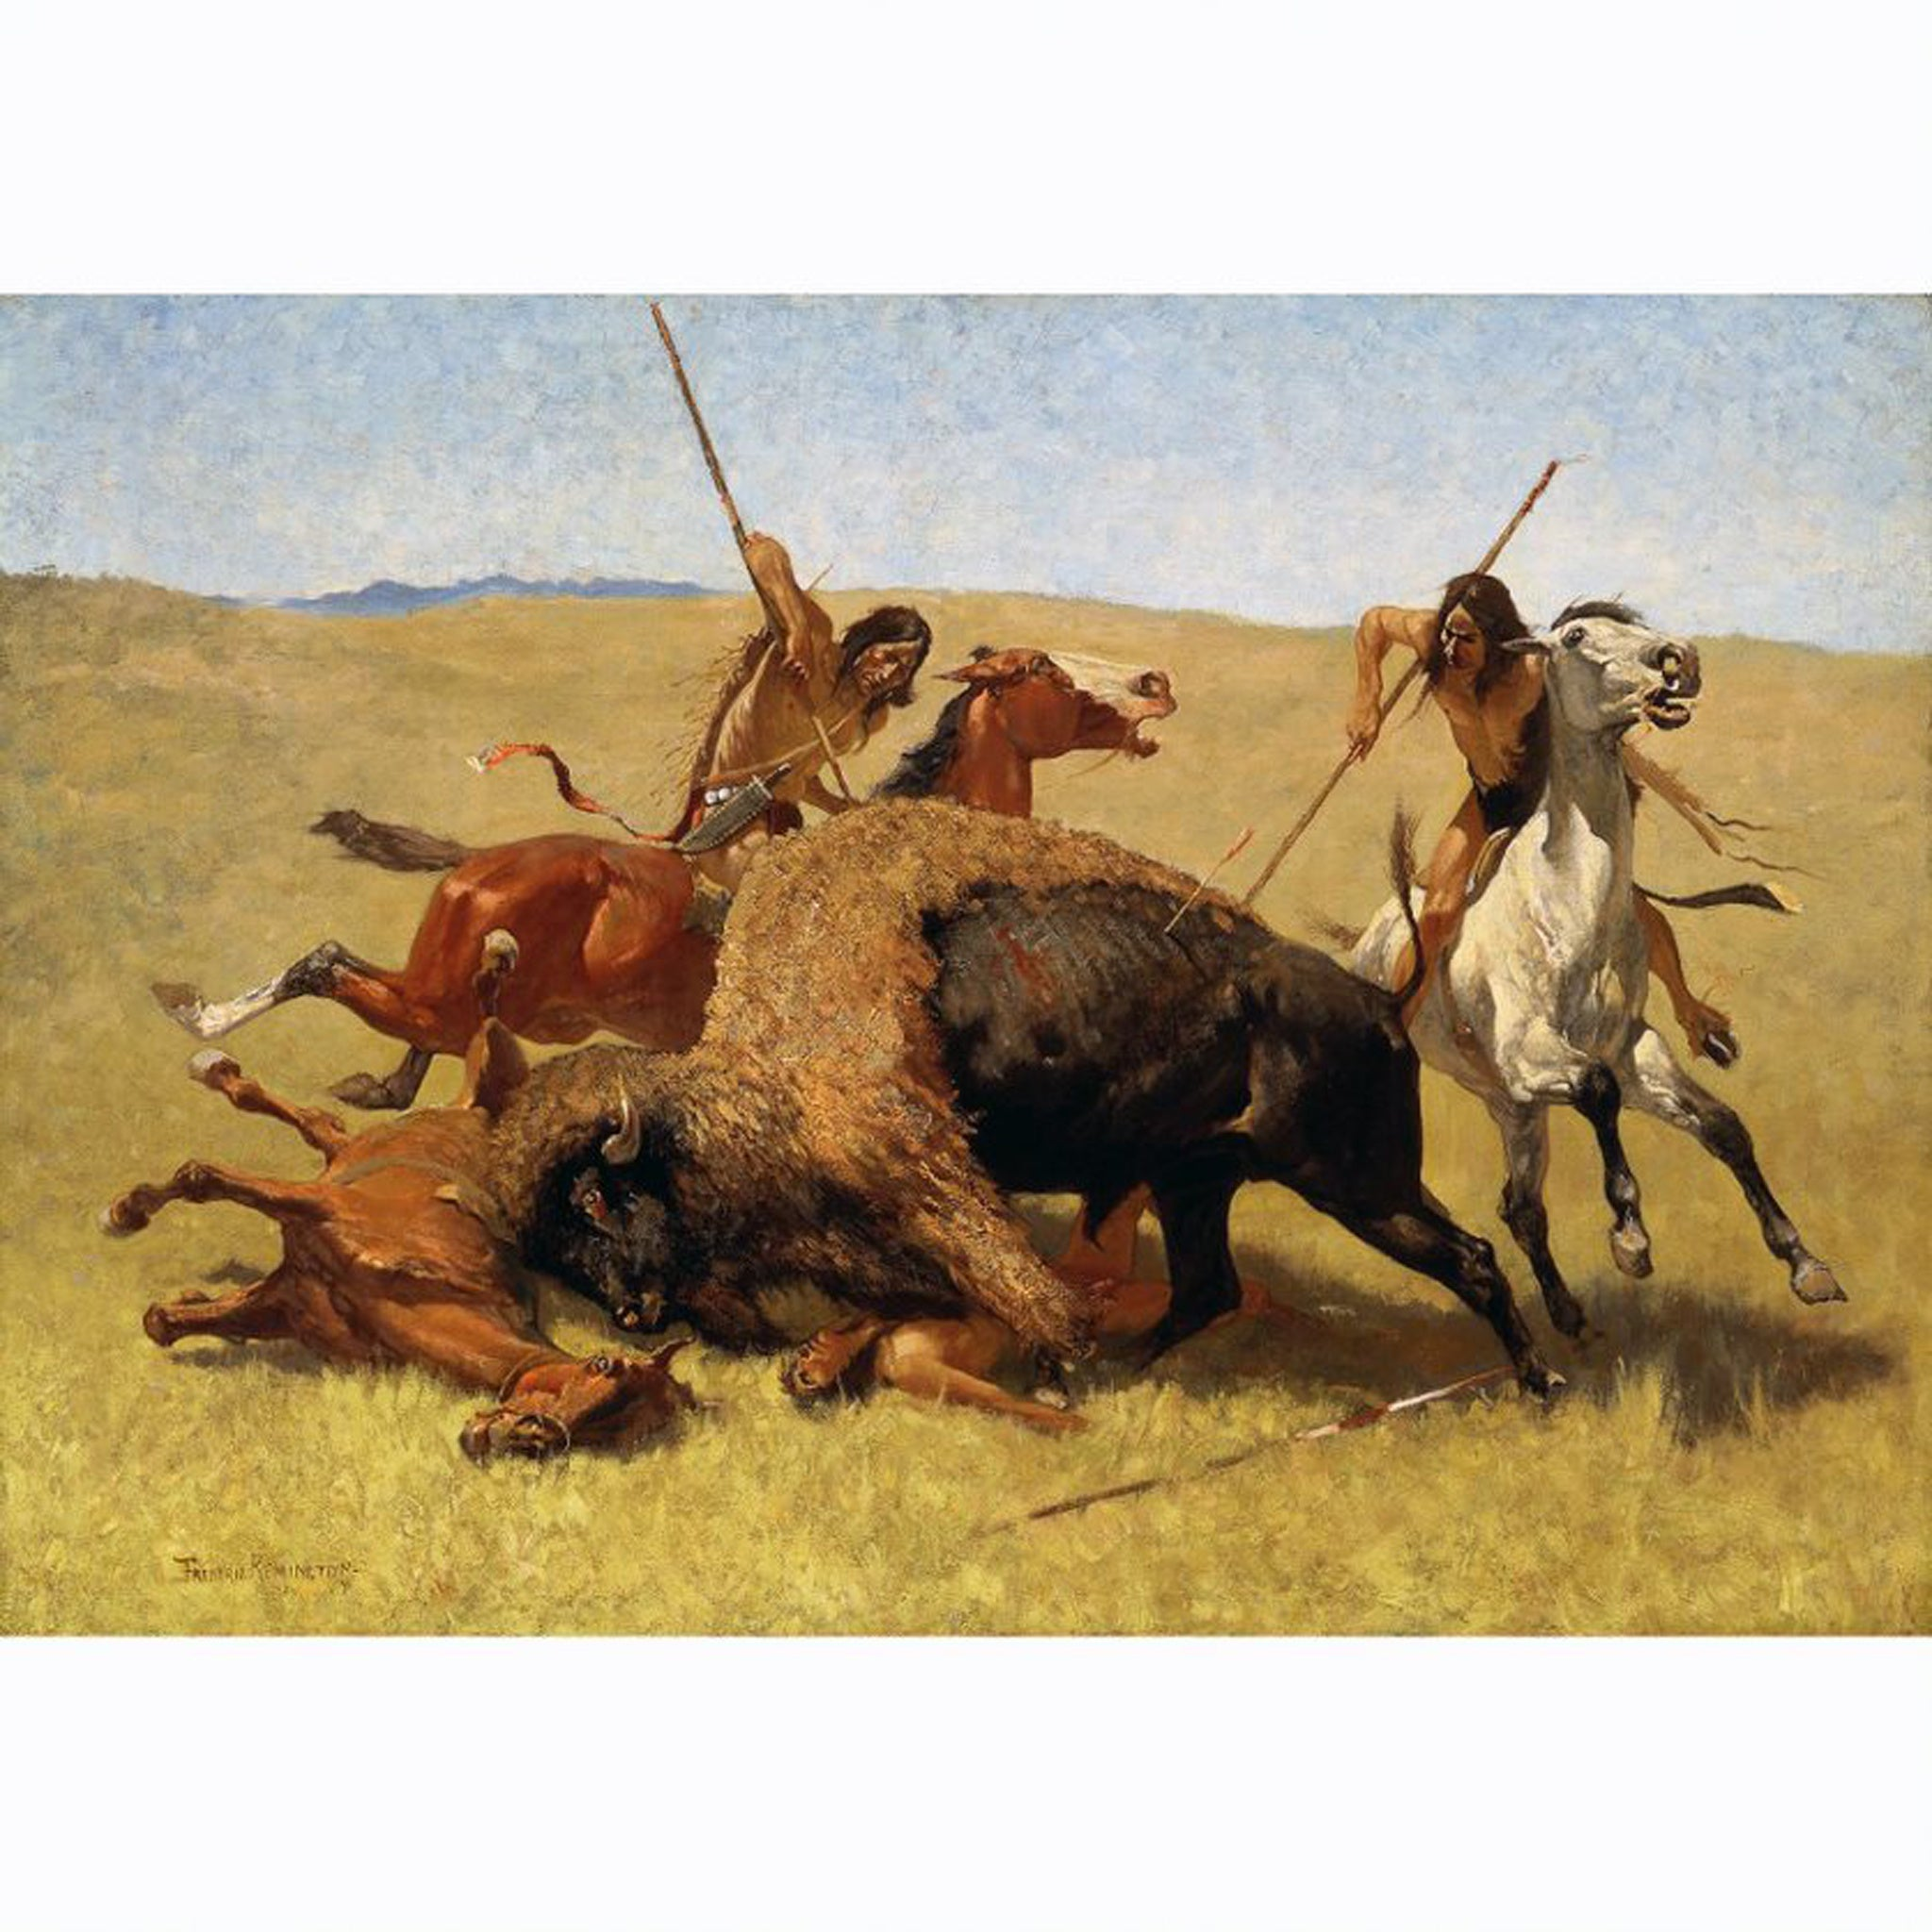 PR 81* THE BUFFALO HUNT